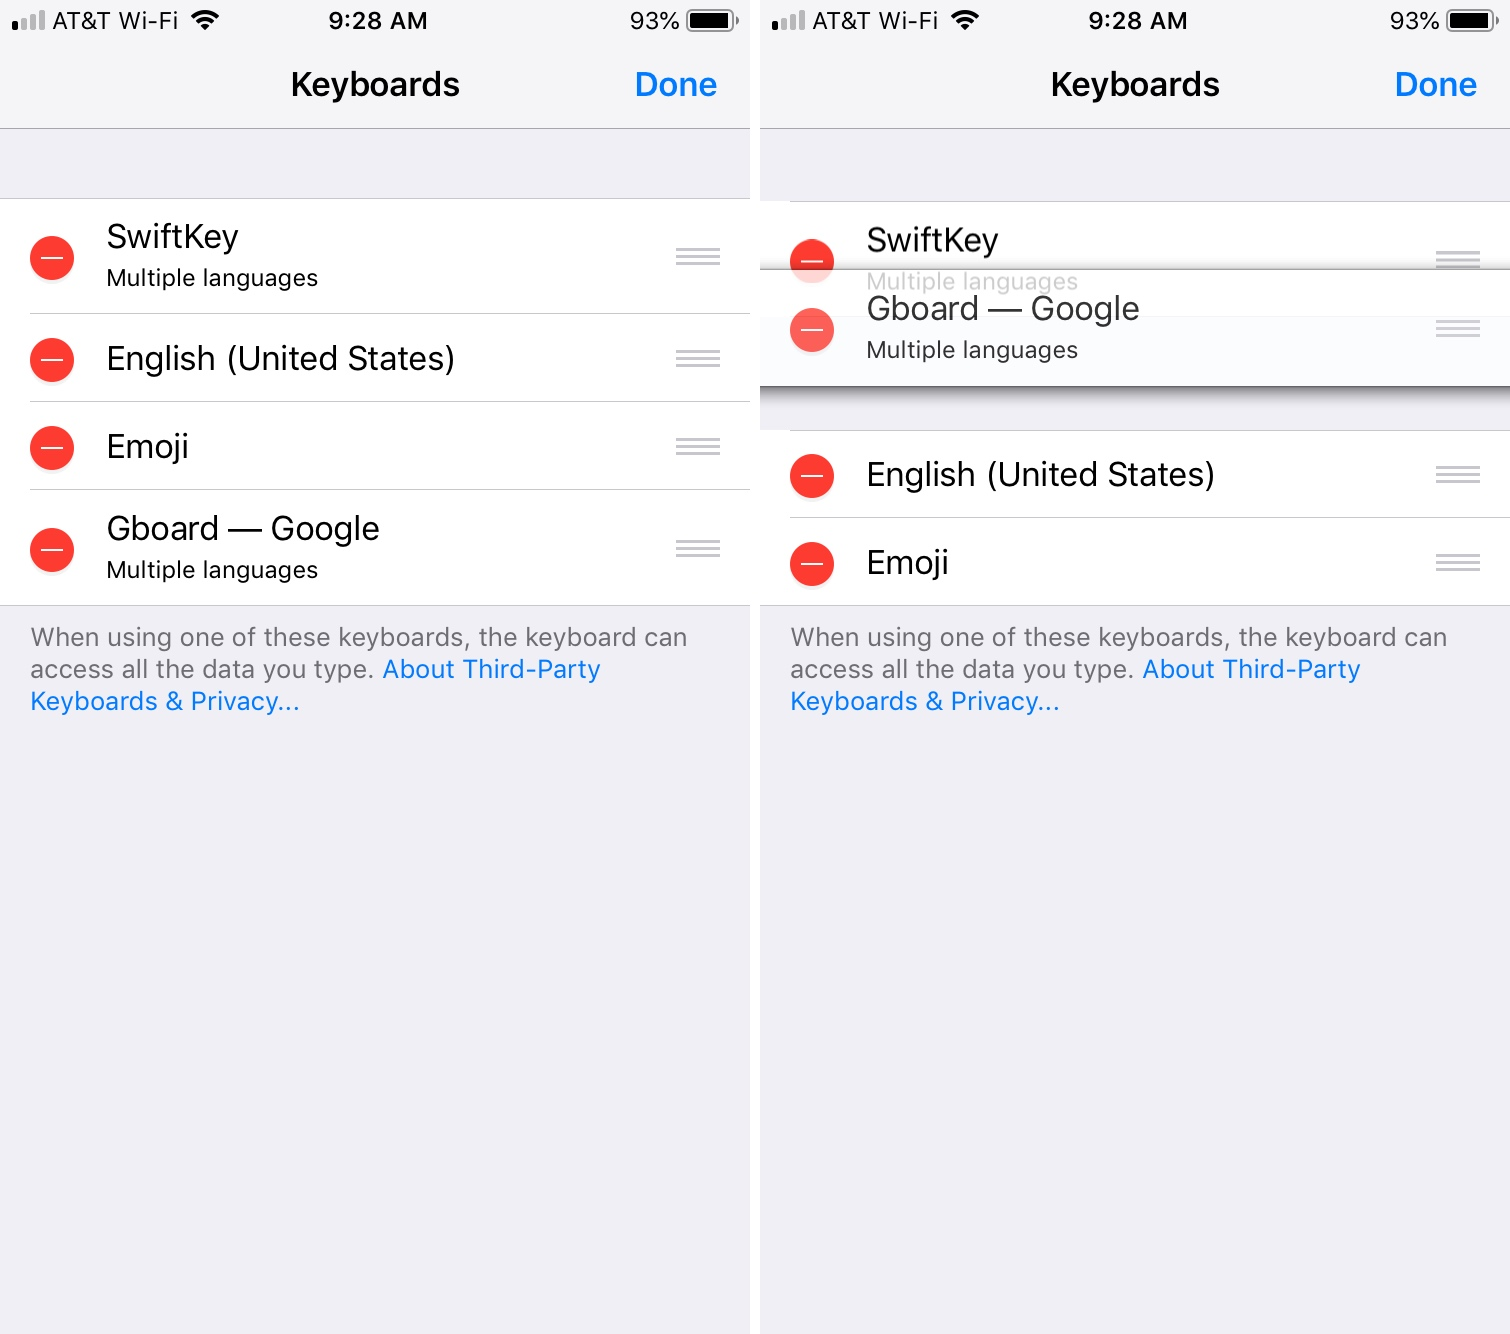 Change Order of Keyboards on iPhone